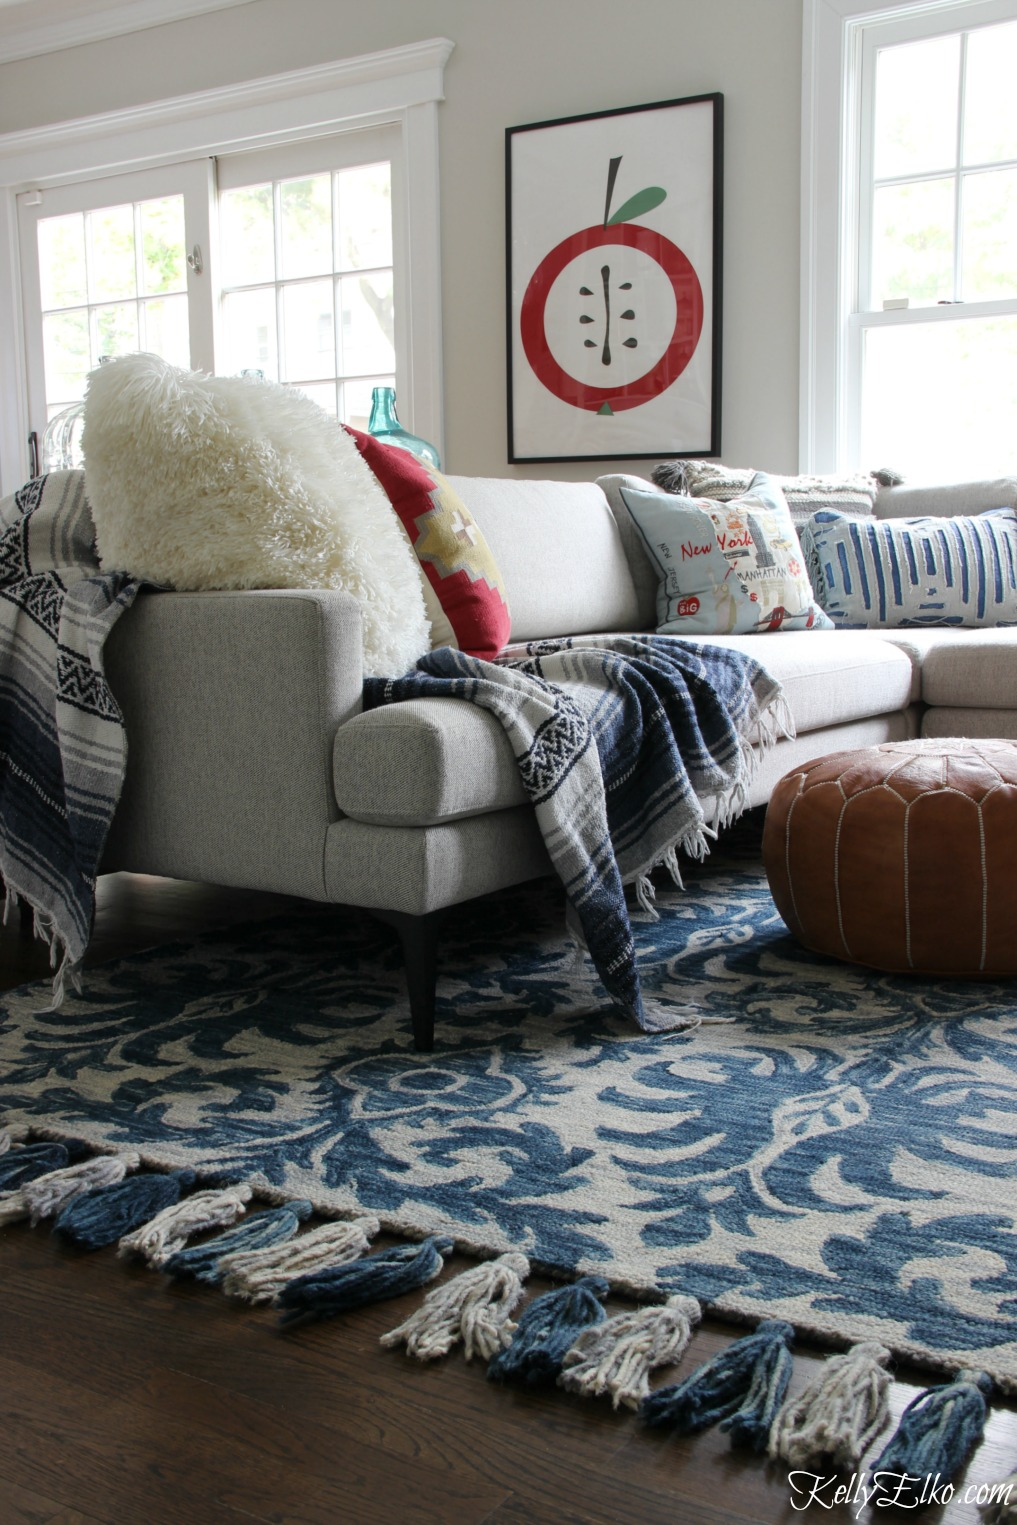 How To Find The Right Size Rug For Family And Living Rooms